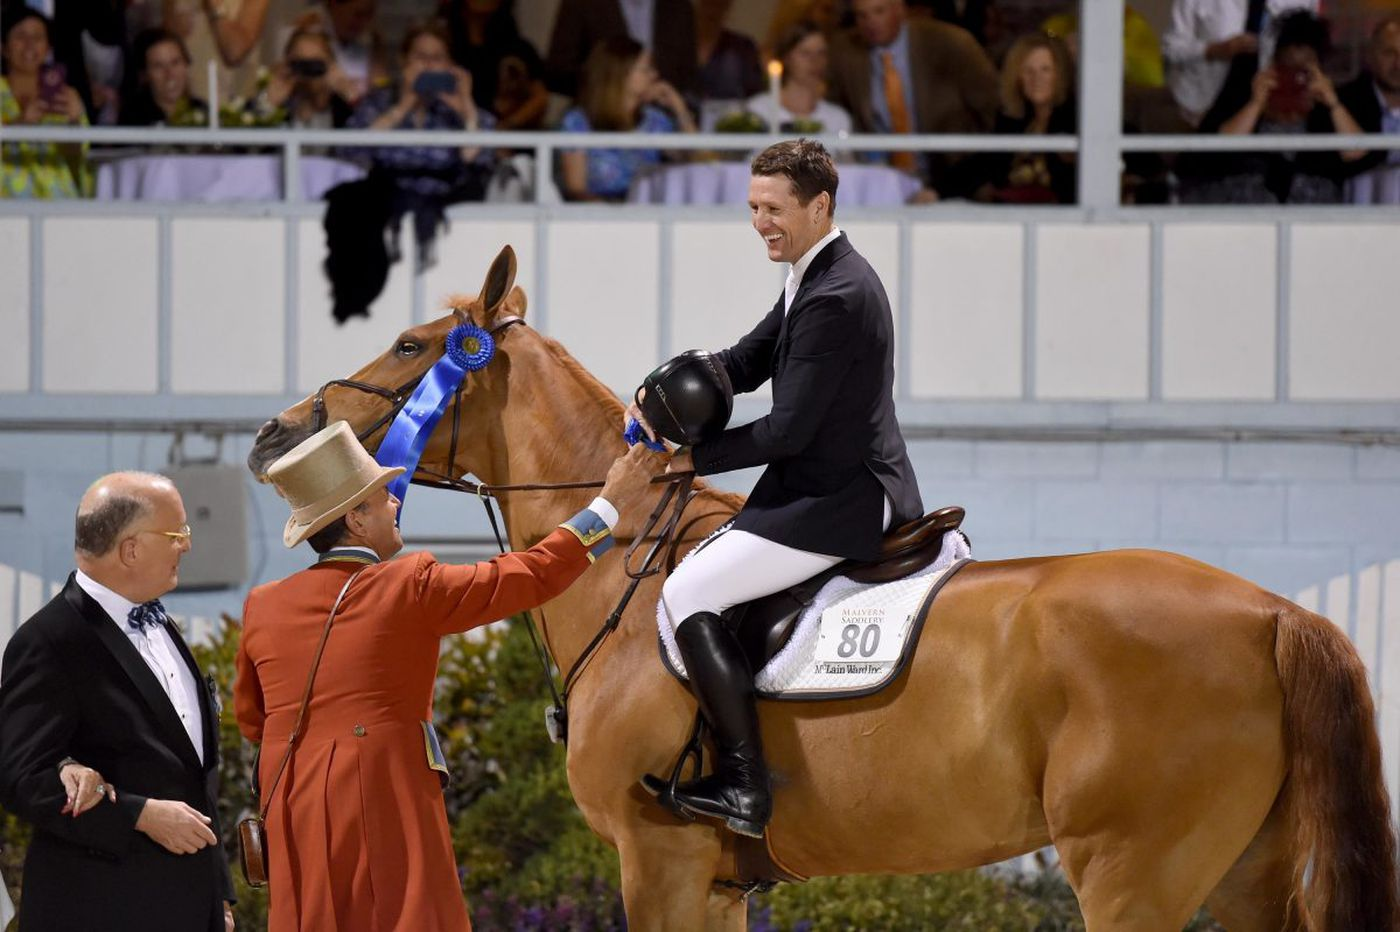 Devon Horse Show's Sapphire Grand Prix includes top U.S. riders